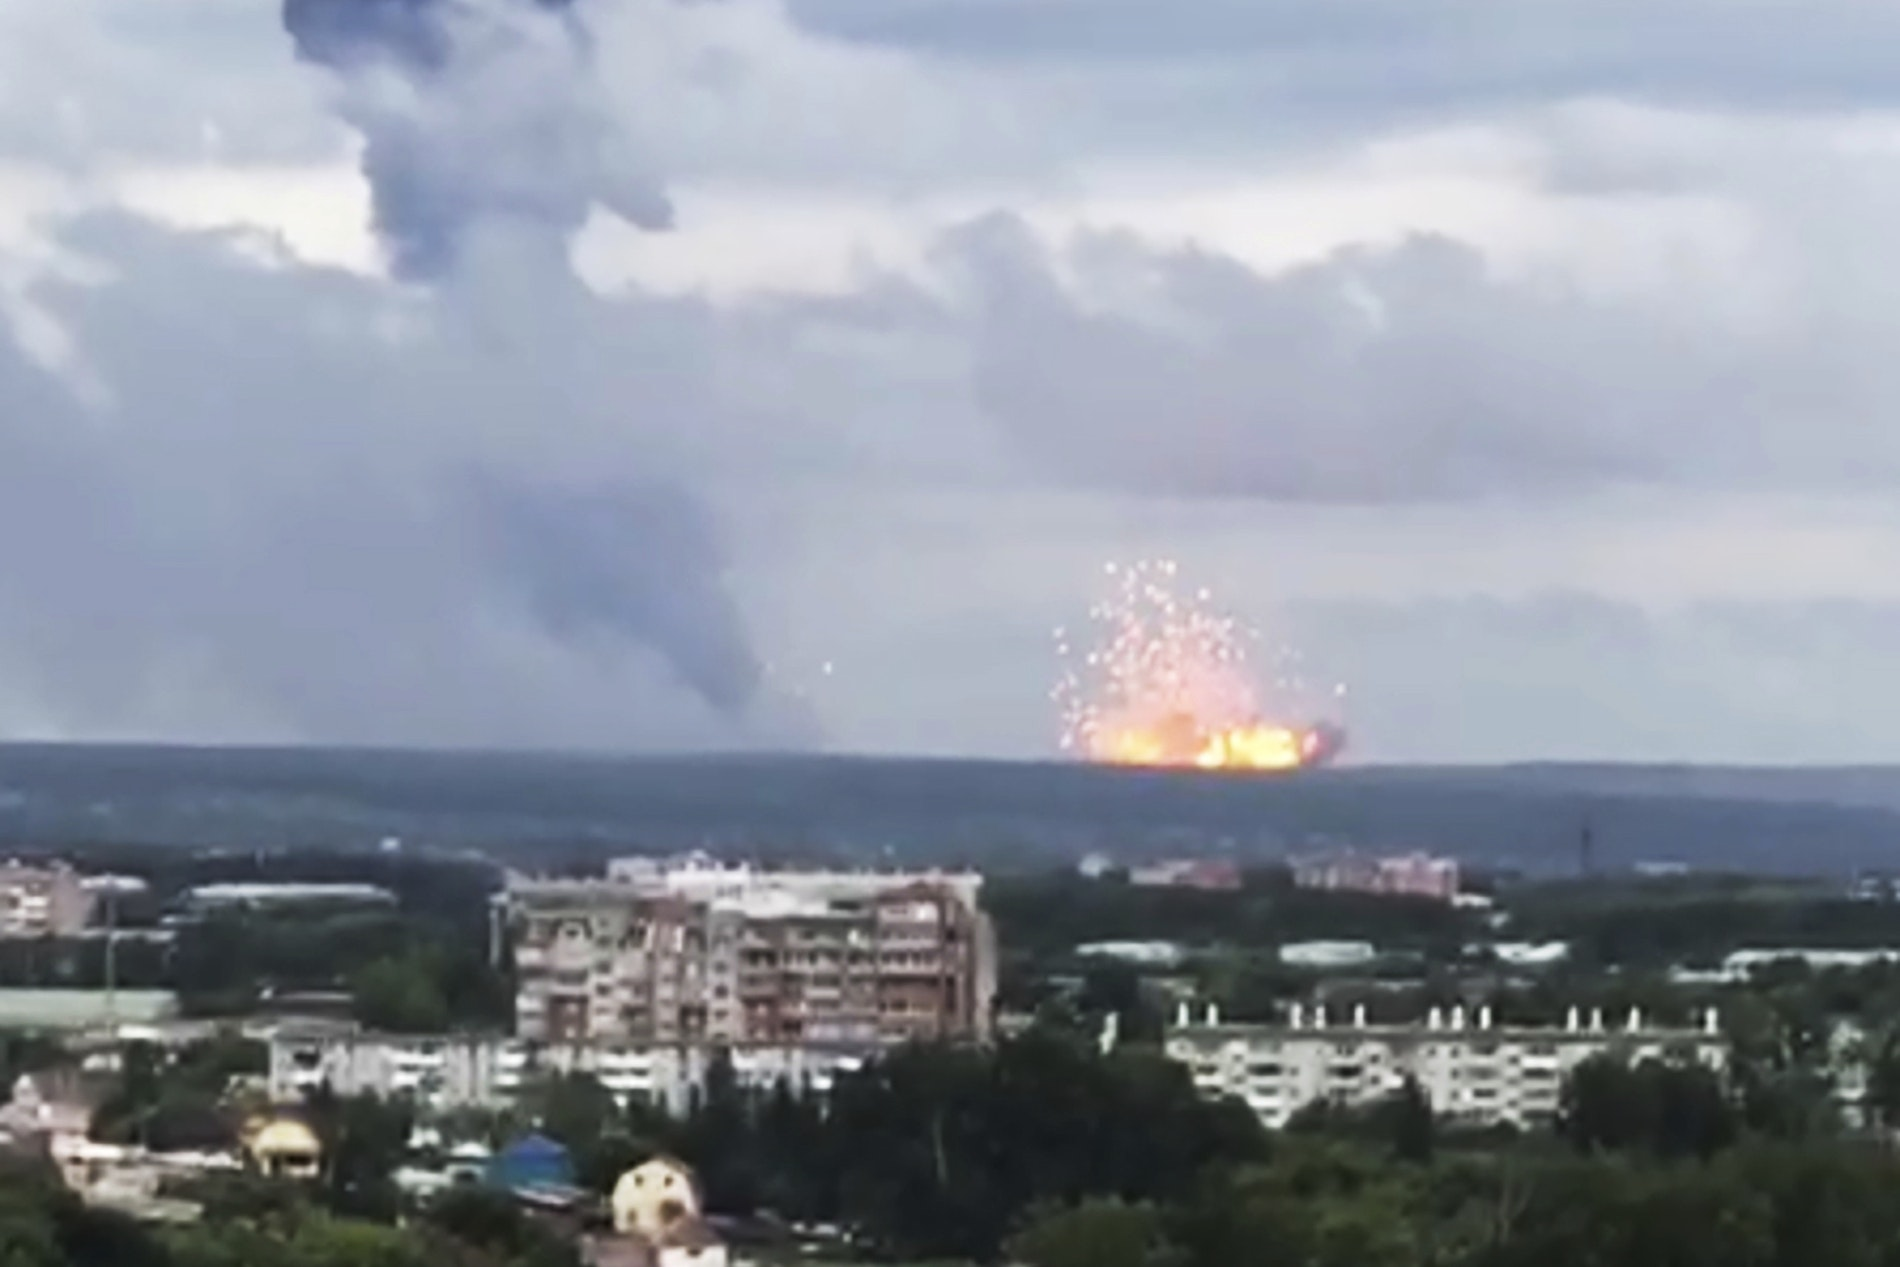 Thousands Evacuated After Explosions At Russian Military Base In Eastern Siberia Reading Chronicle